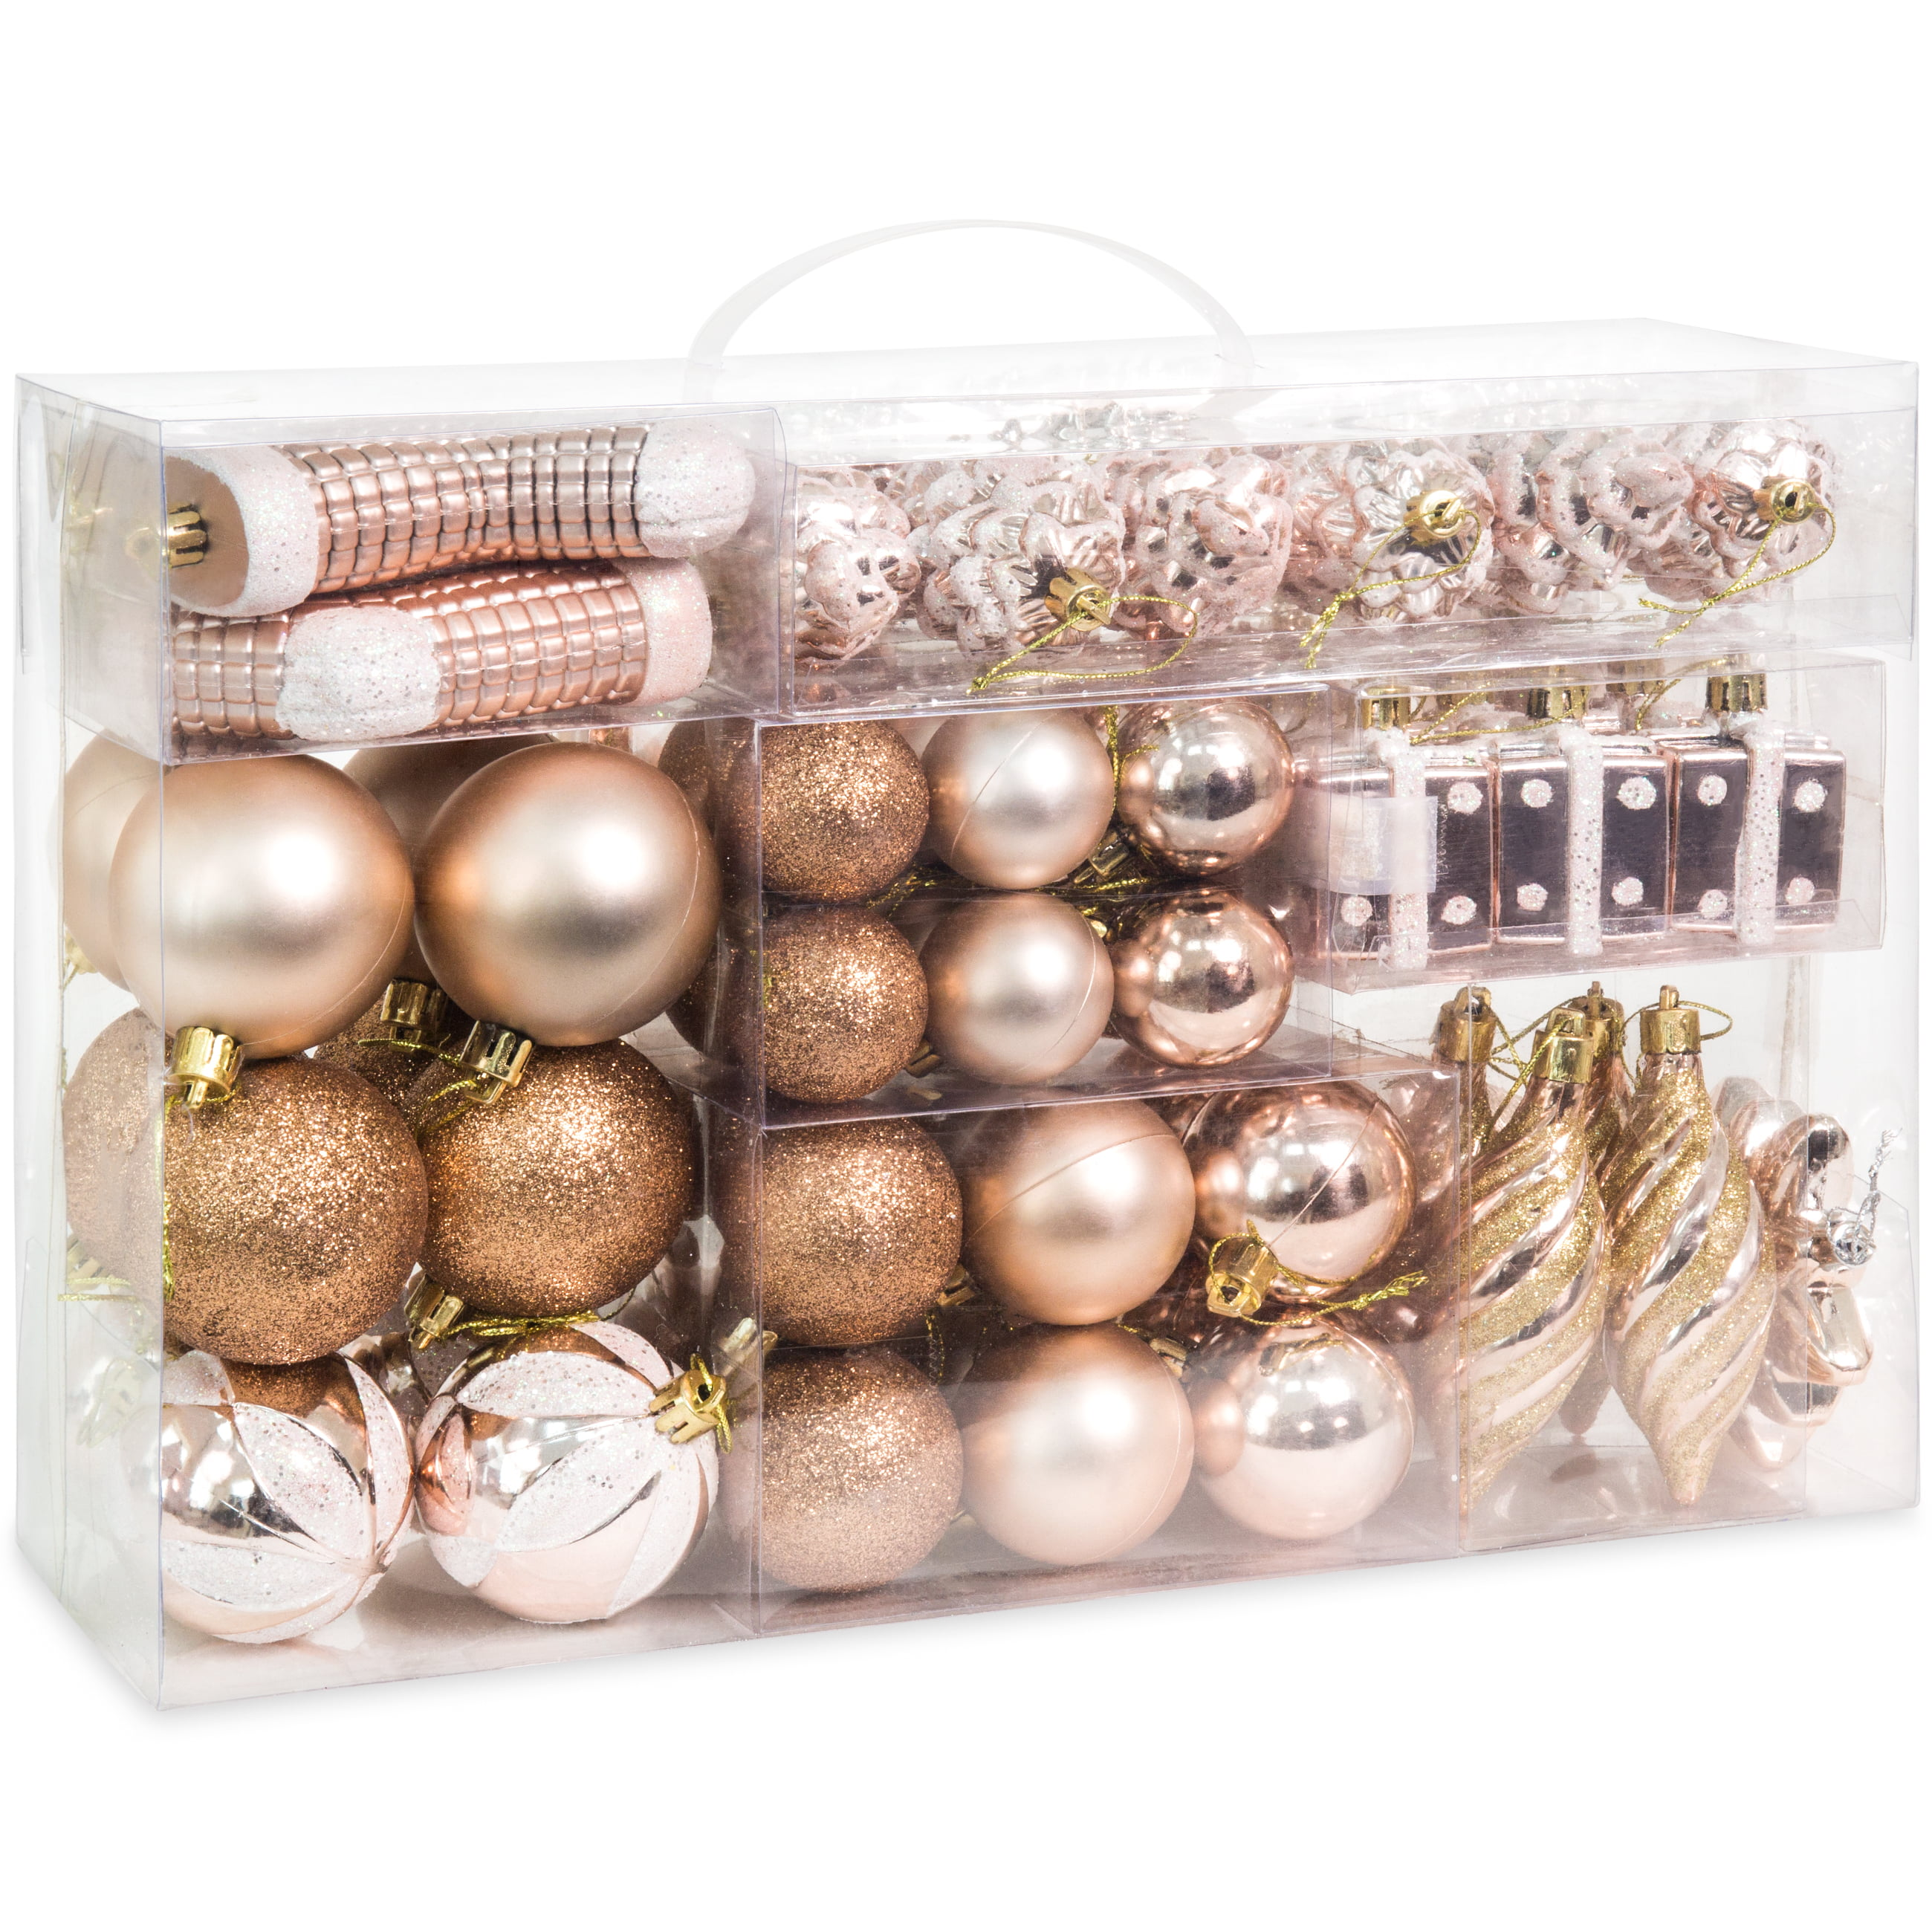 Best Choice Products Set Of 72 Handcrafted Shatterproof Hanging Christmas Ornaments W Glitter Design Rose Gold Walmart Com Walmart Com